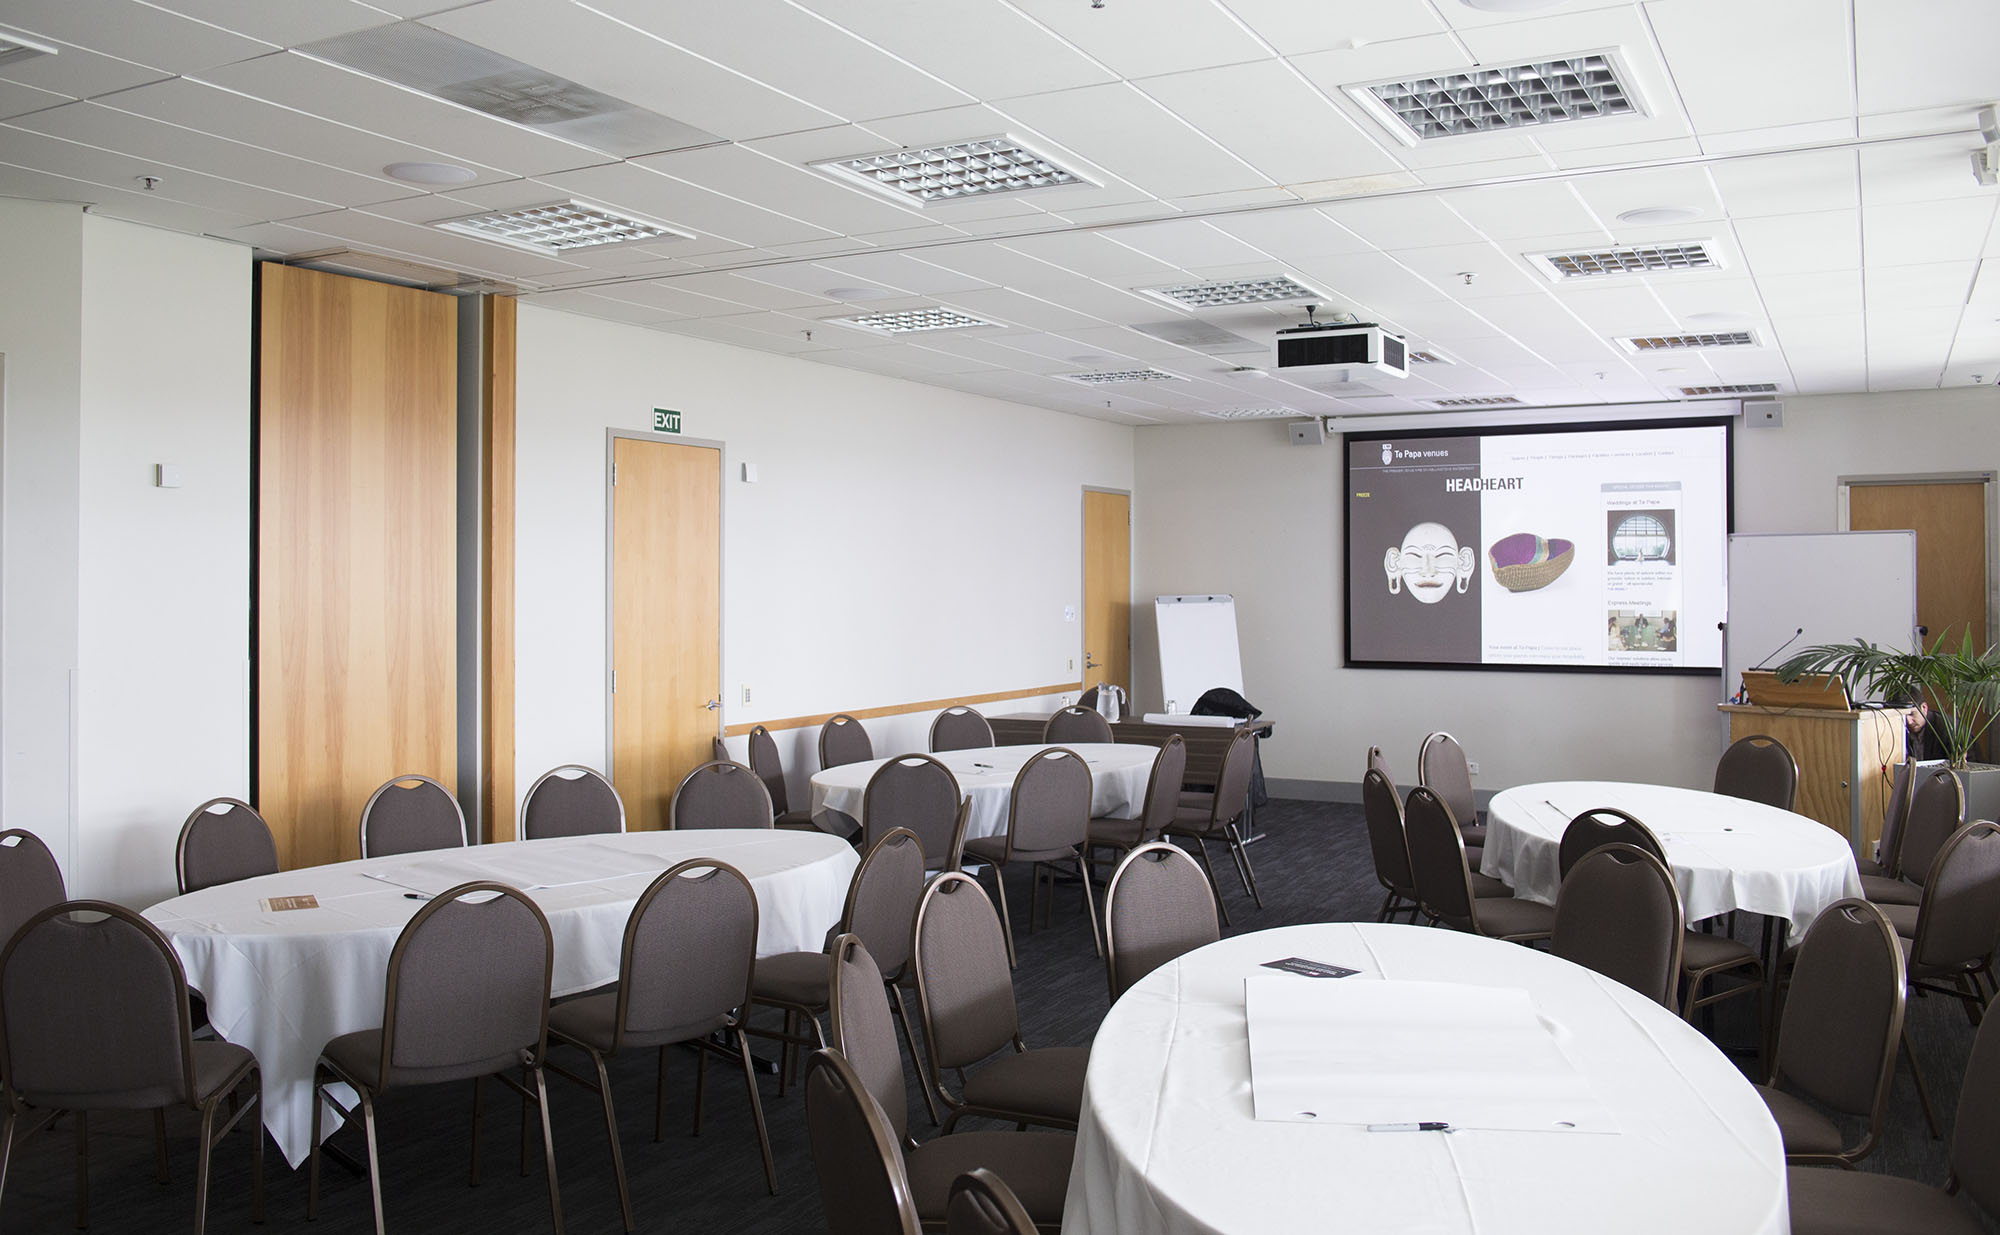 Large meeting room with a series of medium-sized tables in it. Each table has a large sheet of paper, and pens. A projector is on the far wall, beside a lantern for a speaker